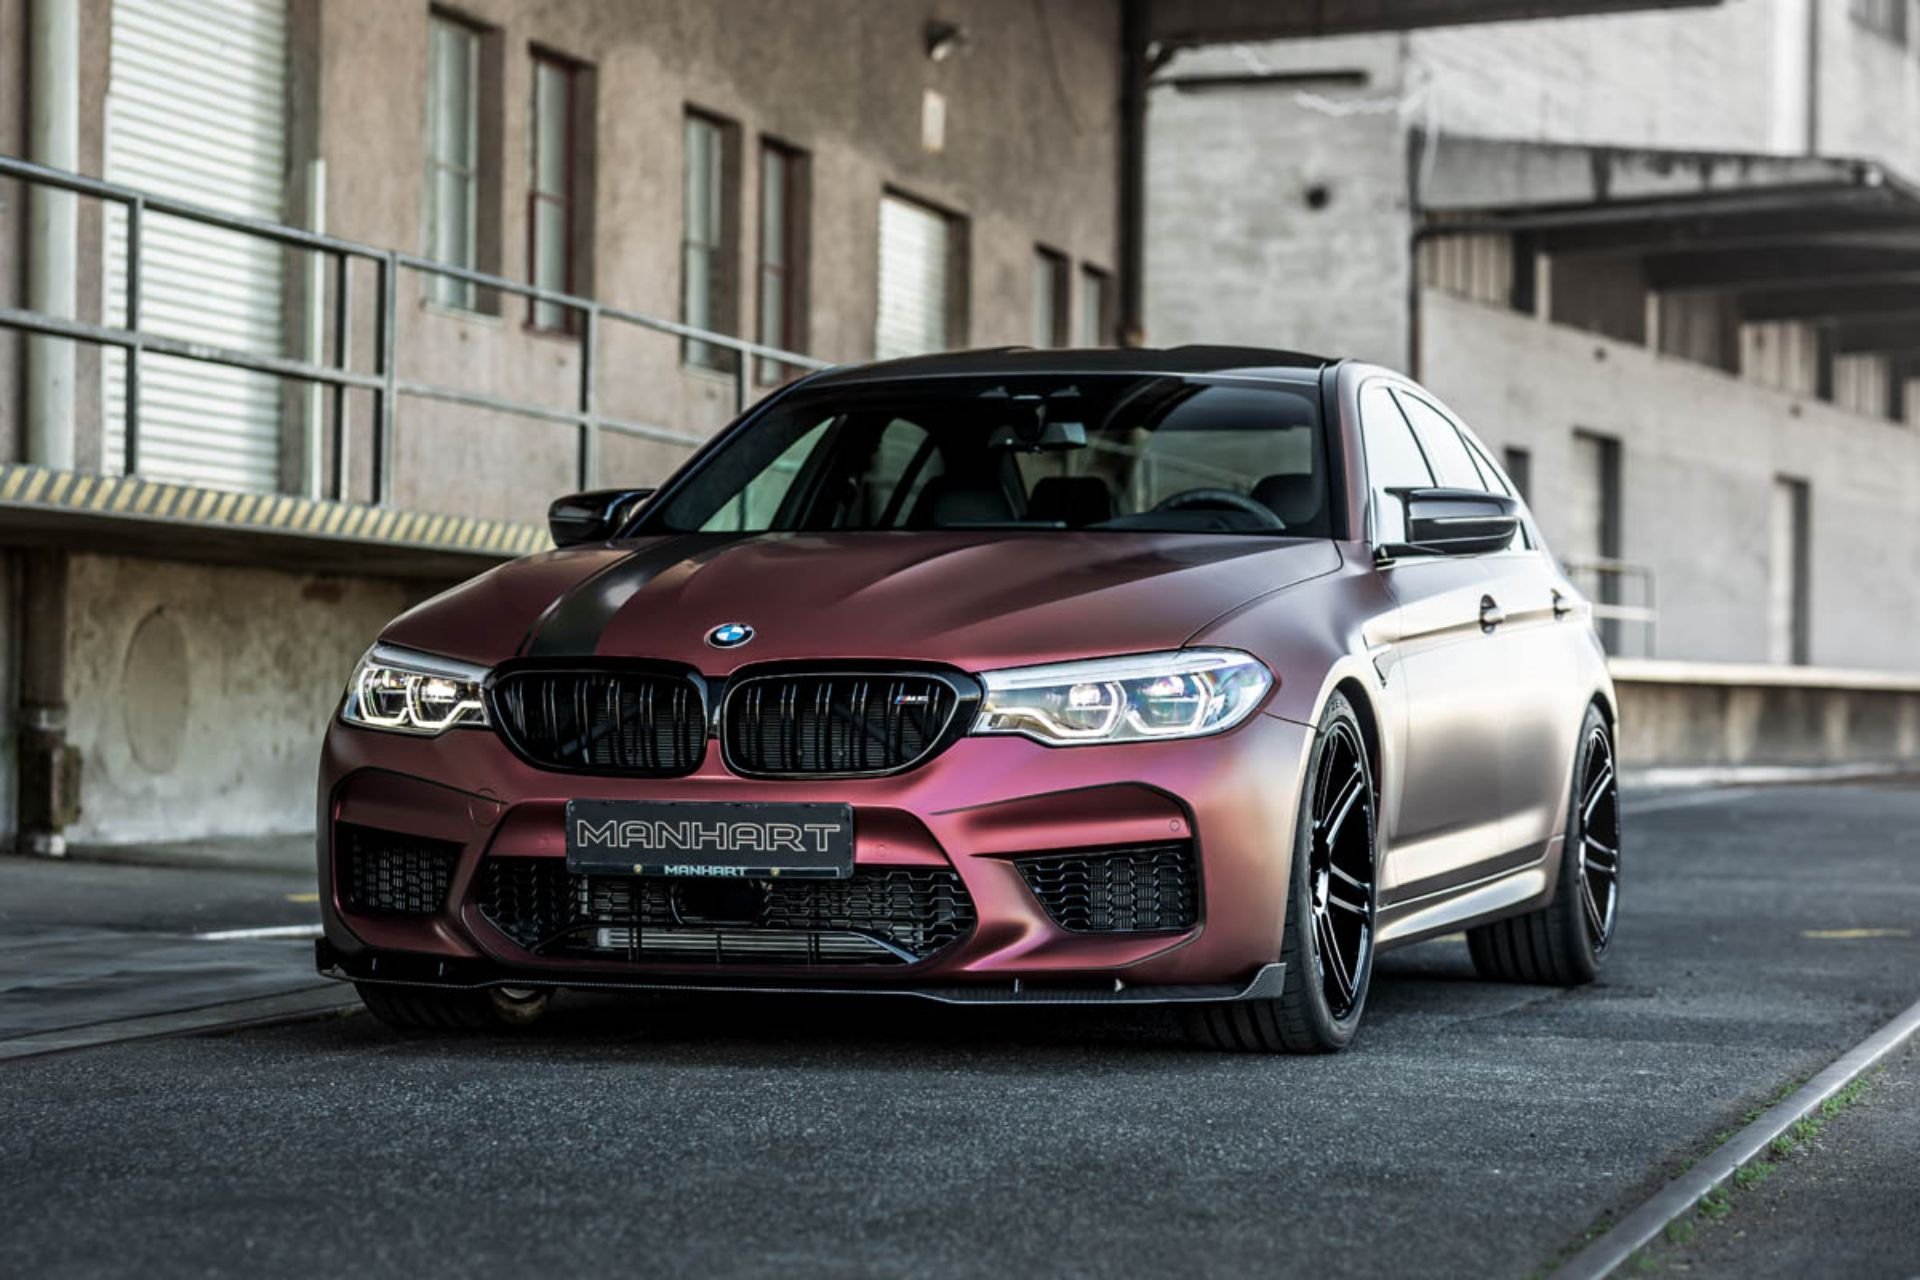 Around three years ago, Manhart released a tuning kit called the MH5 700 for the F90 BMW M5 (watch the video if you would like a reminder). Now, it has produced an even cooler kit for the latest-and-greatest M5 and M5 CS.